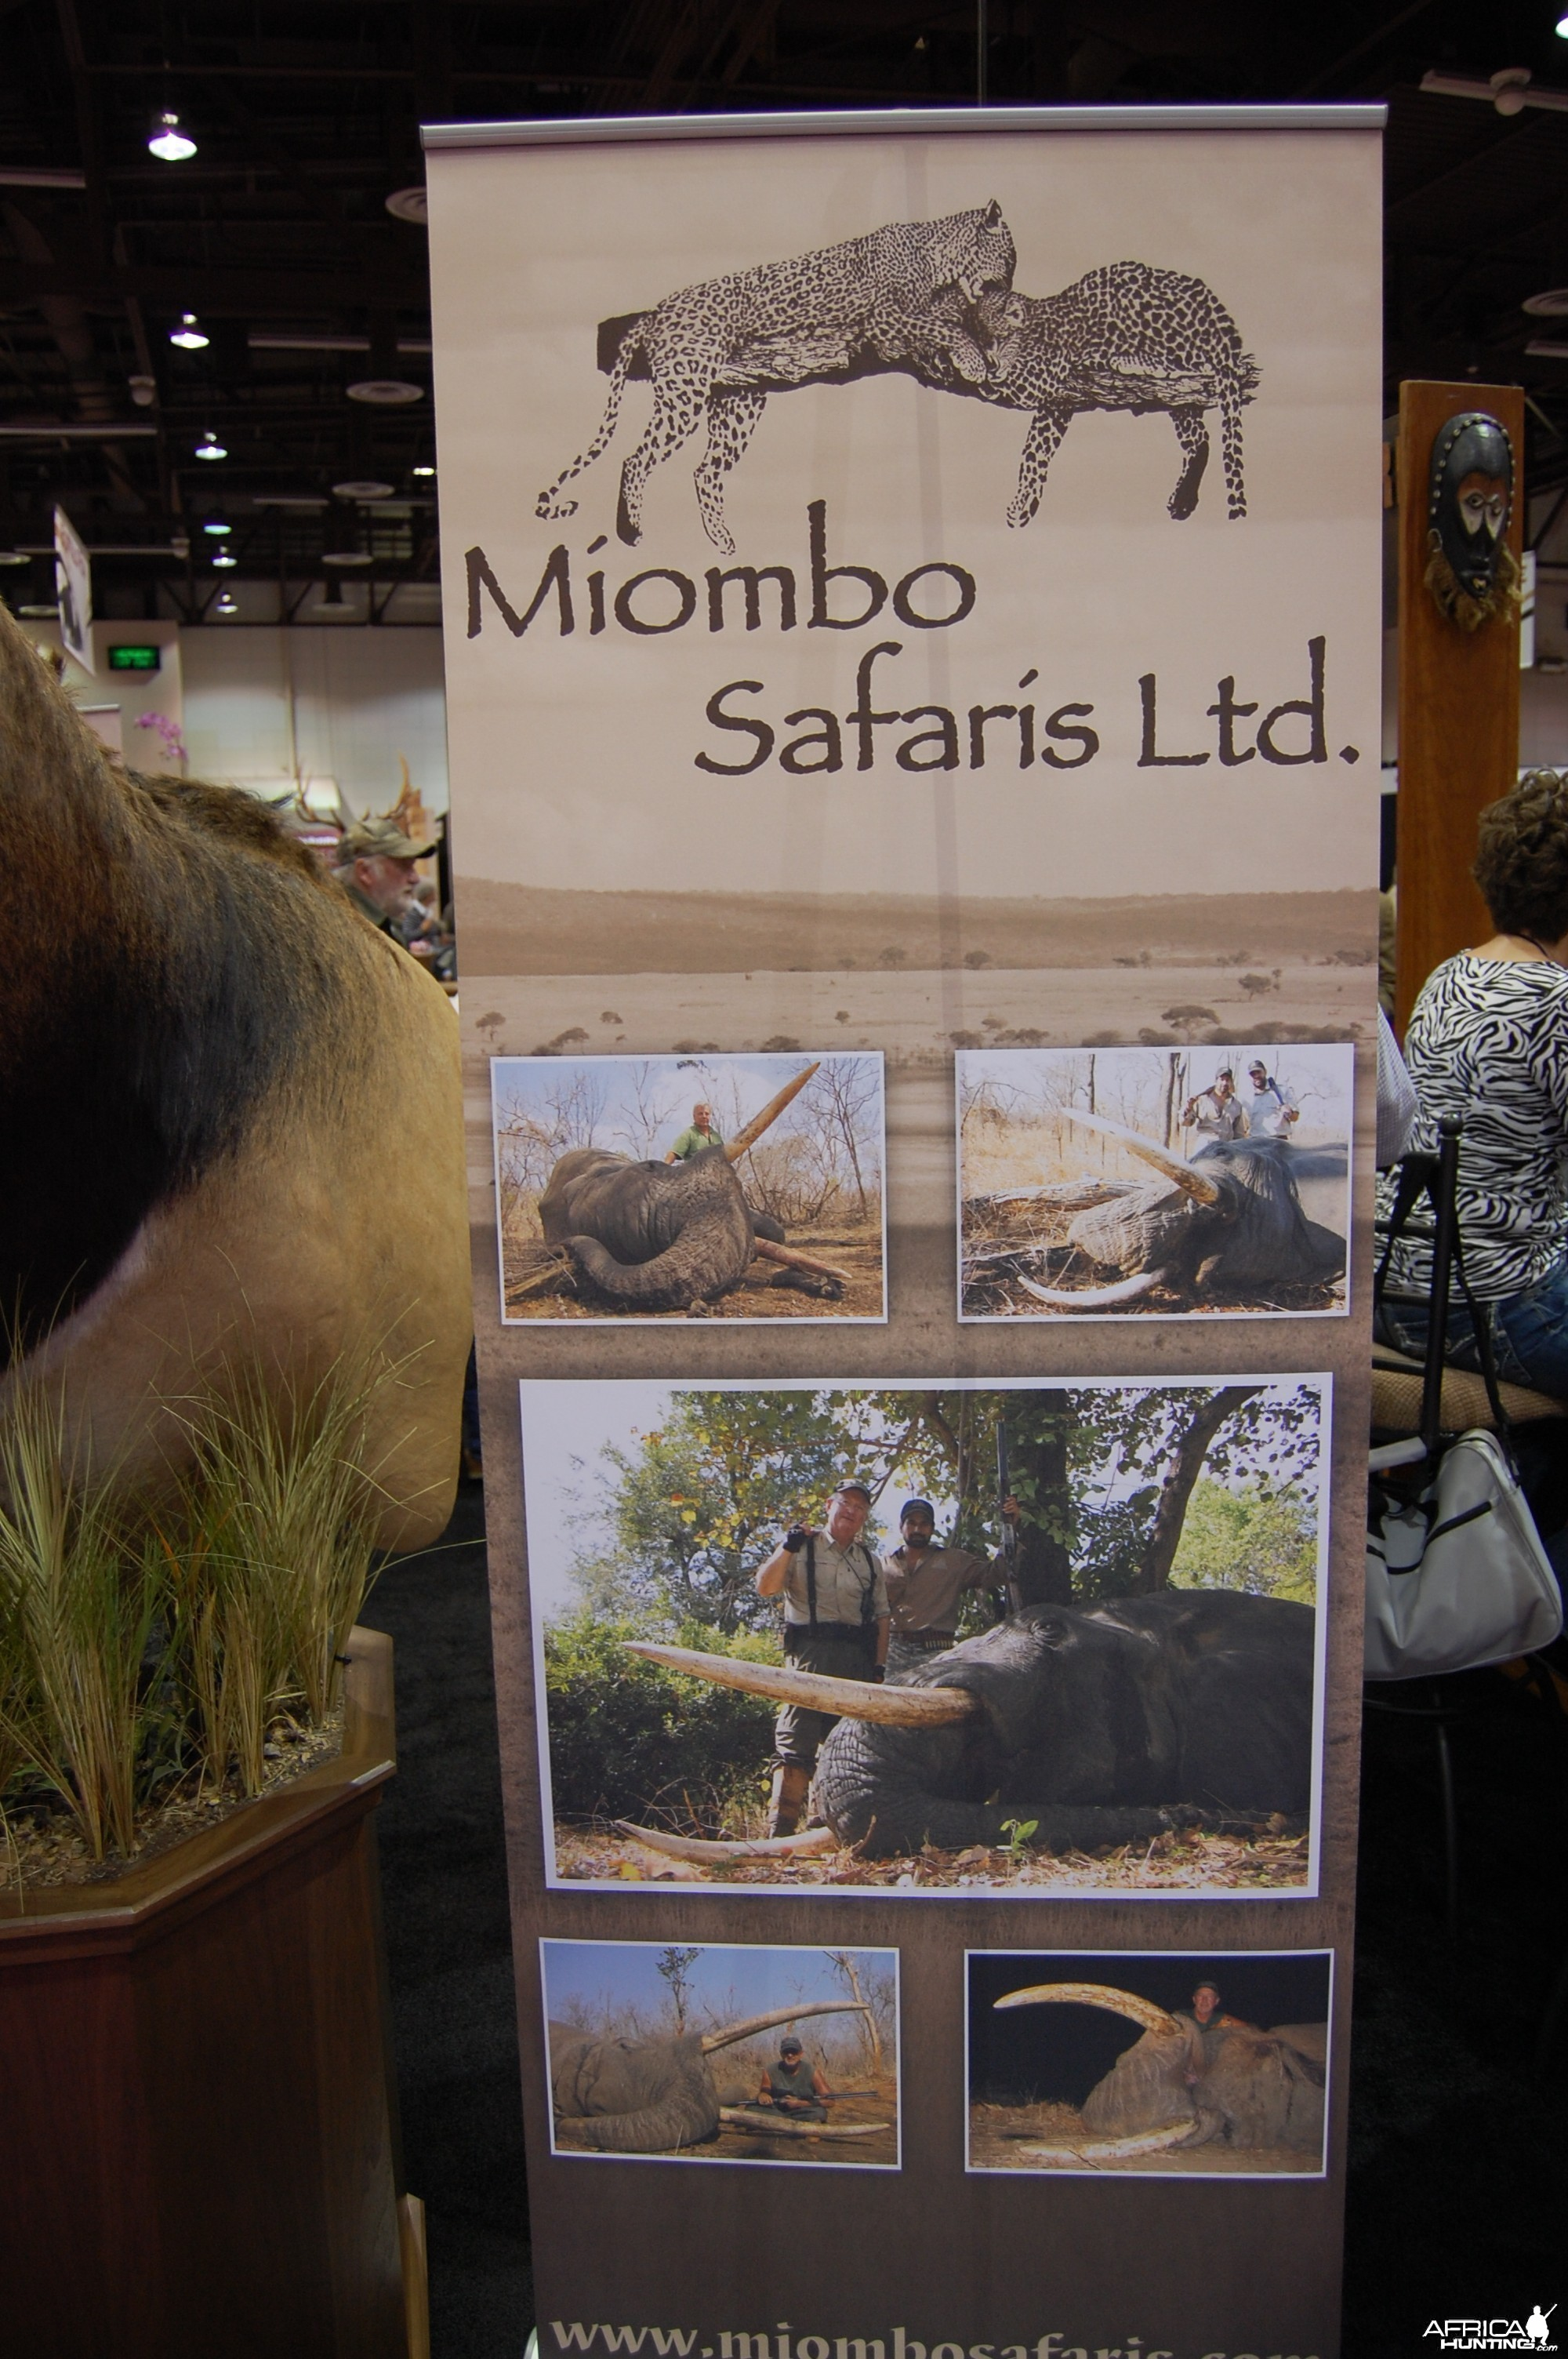 Miombo Safaris